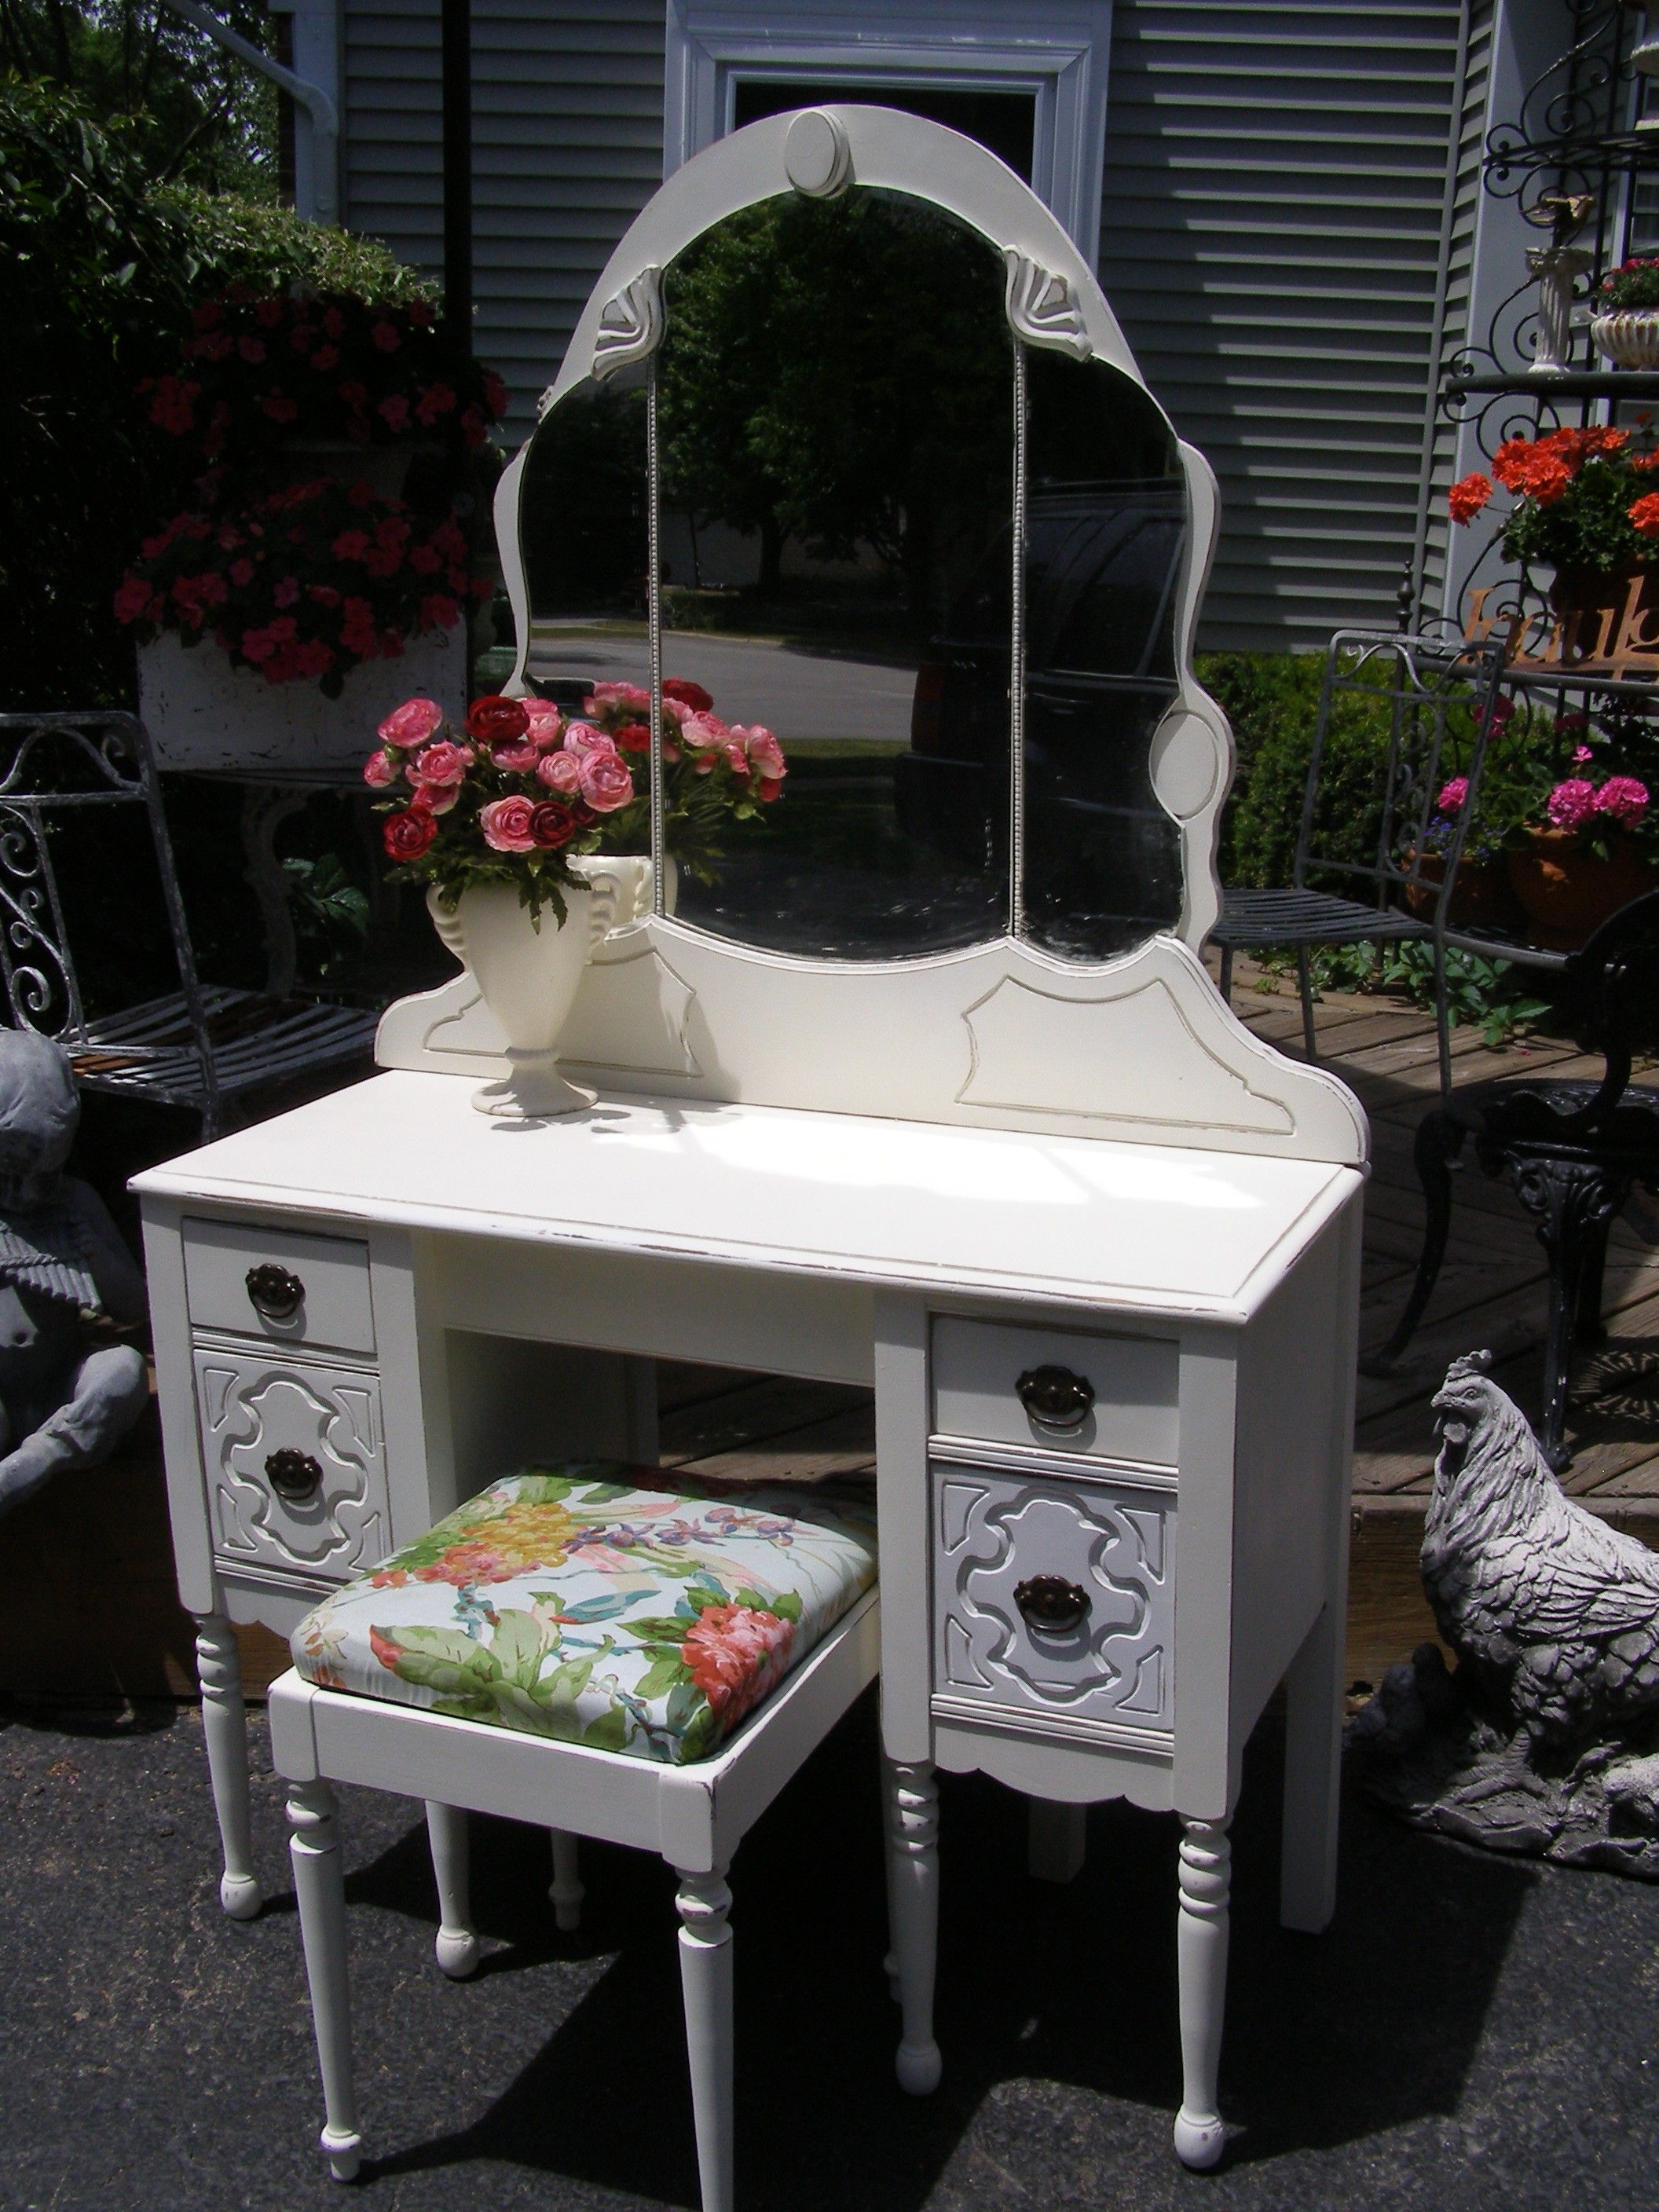 Cottage-Chic Vanity with Bench | Cottage chic vanity ...